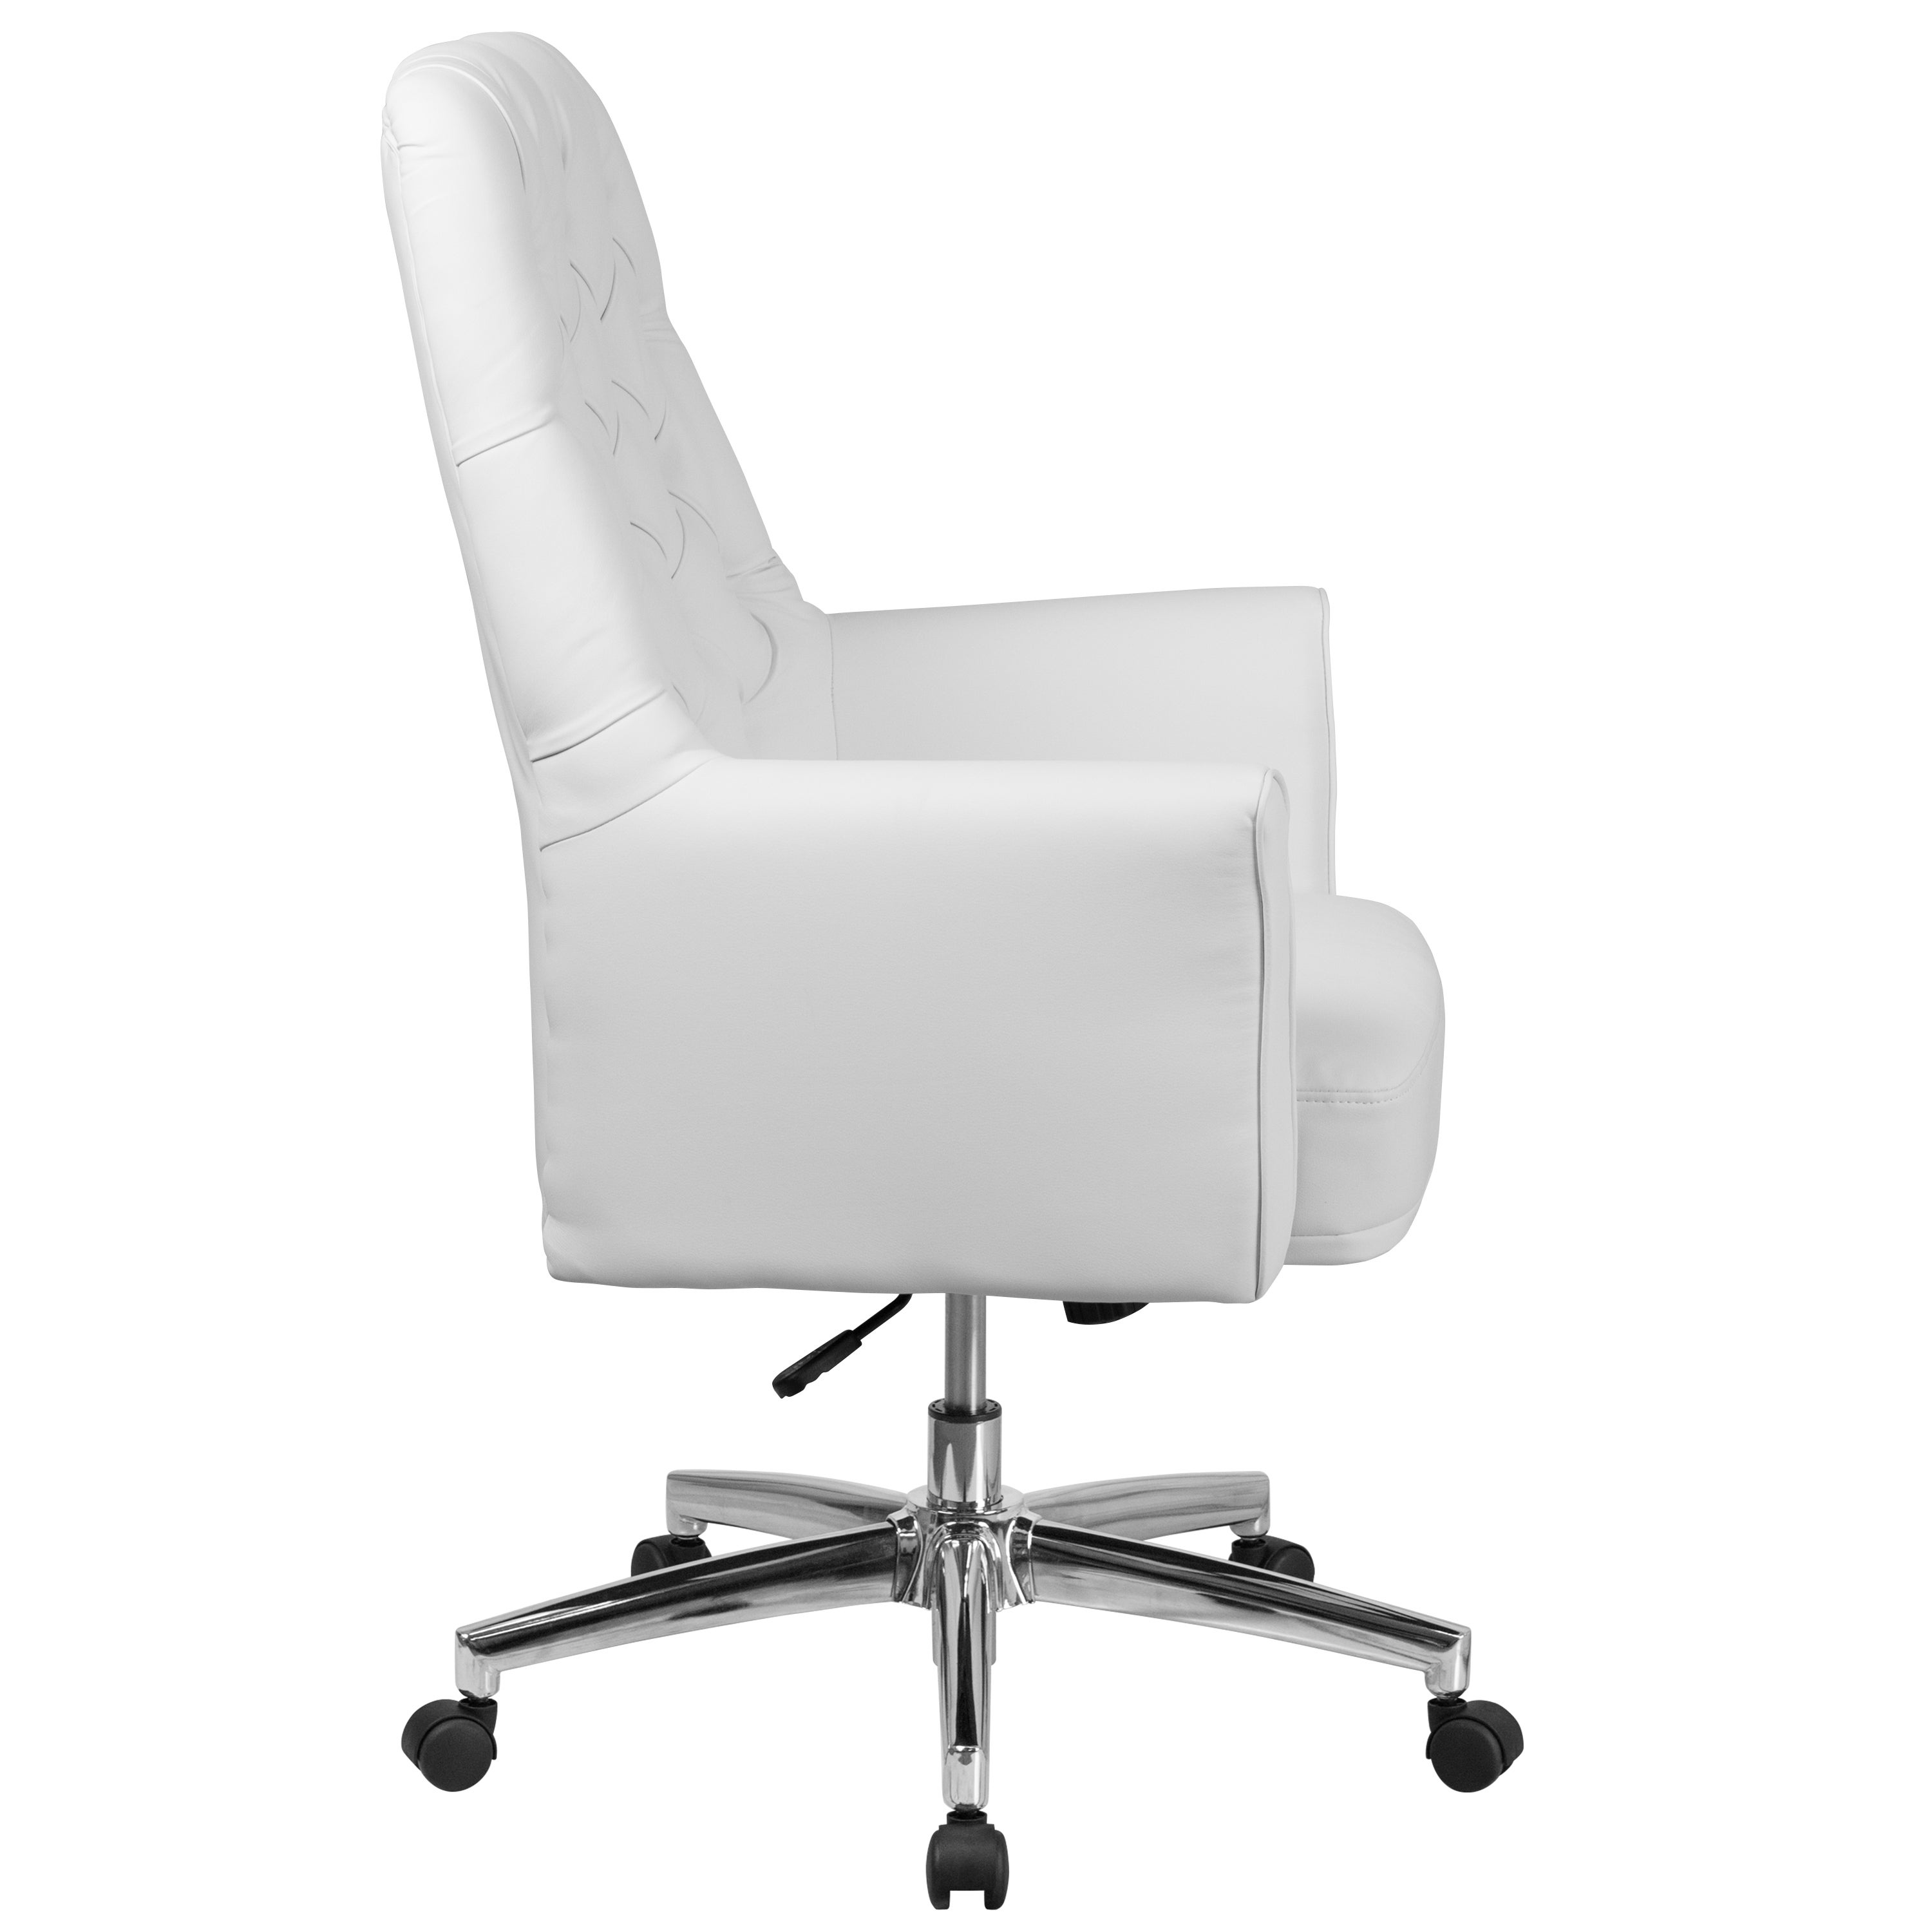 Merveilleux Shop White Leather Button Tufted Multifunction Executive Swivel Office Chair    Free Shipping Today   Overstock.com   16746539